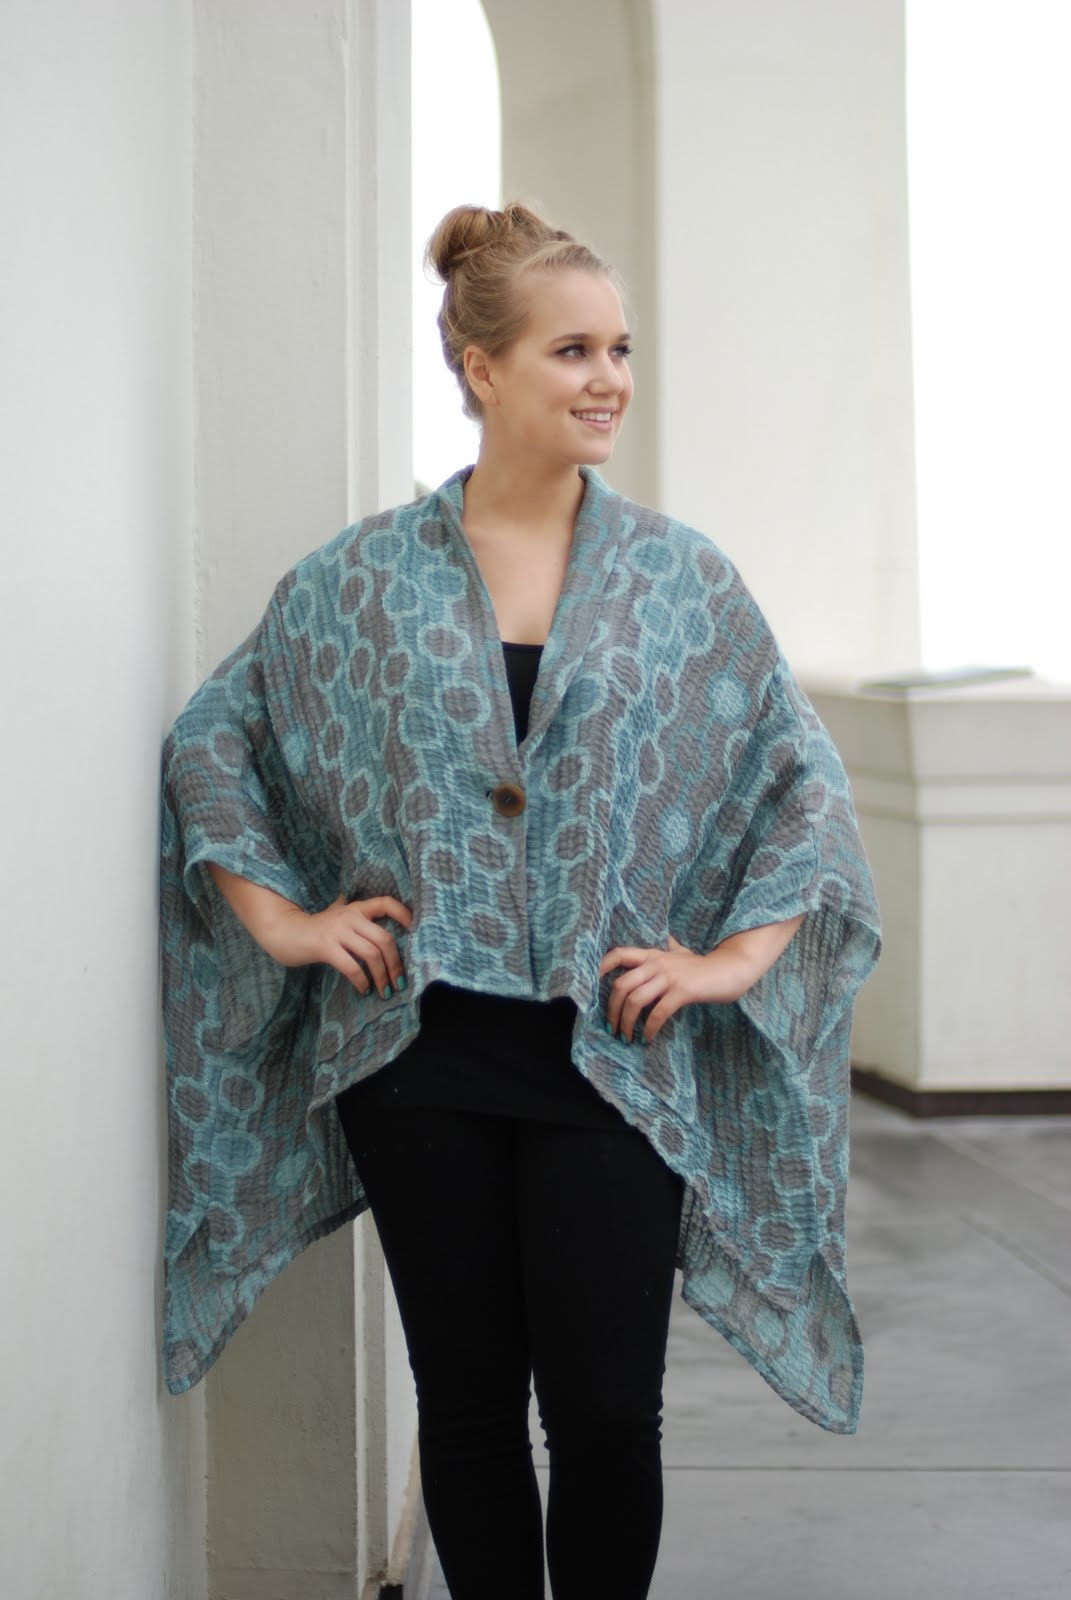 Transparente Designs European Designer Plus Size Fashion